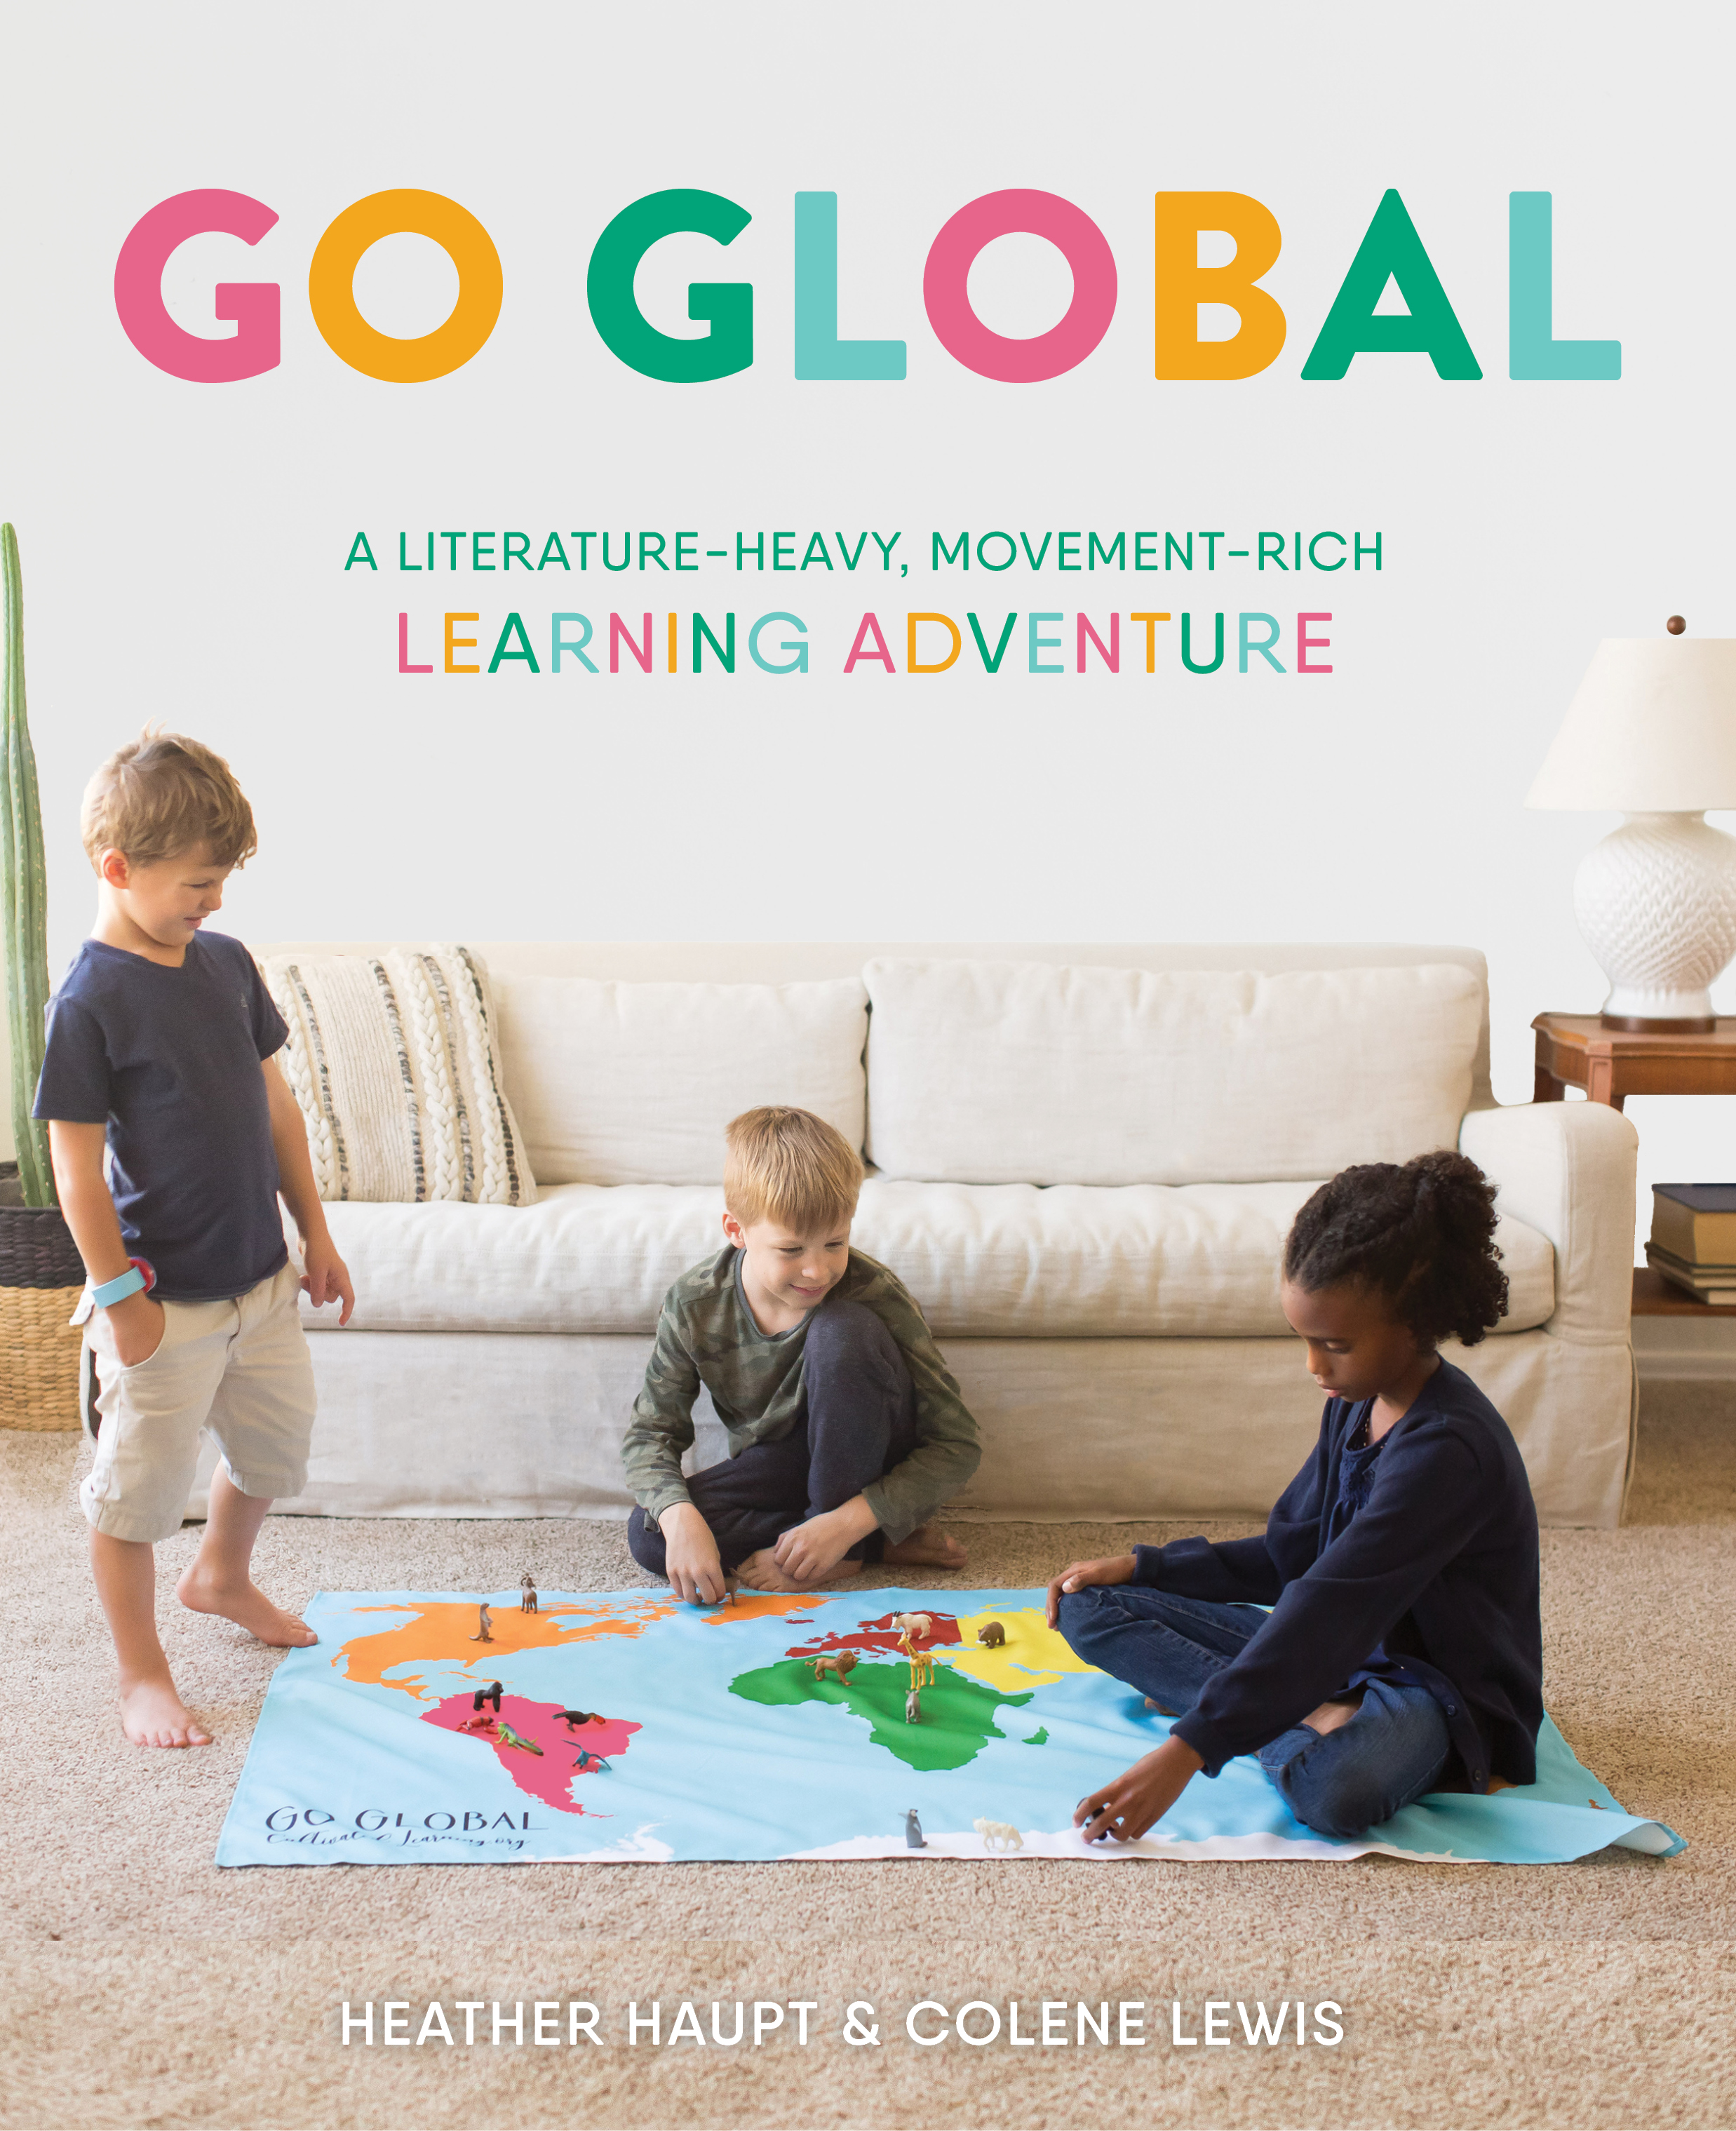 goglobal_FrontCover